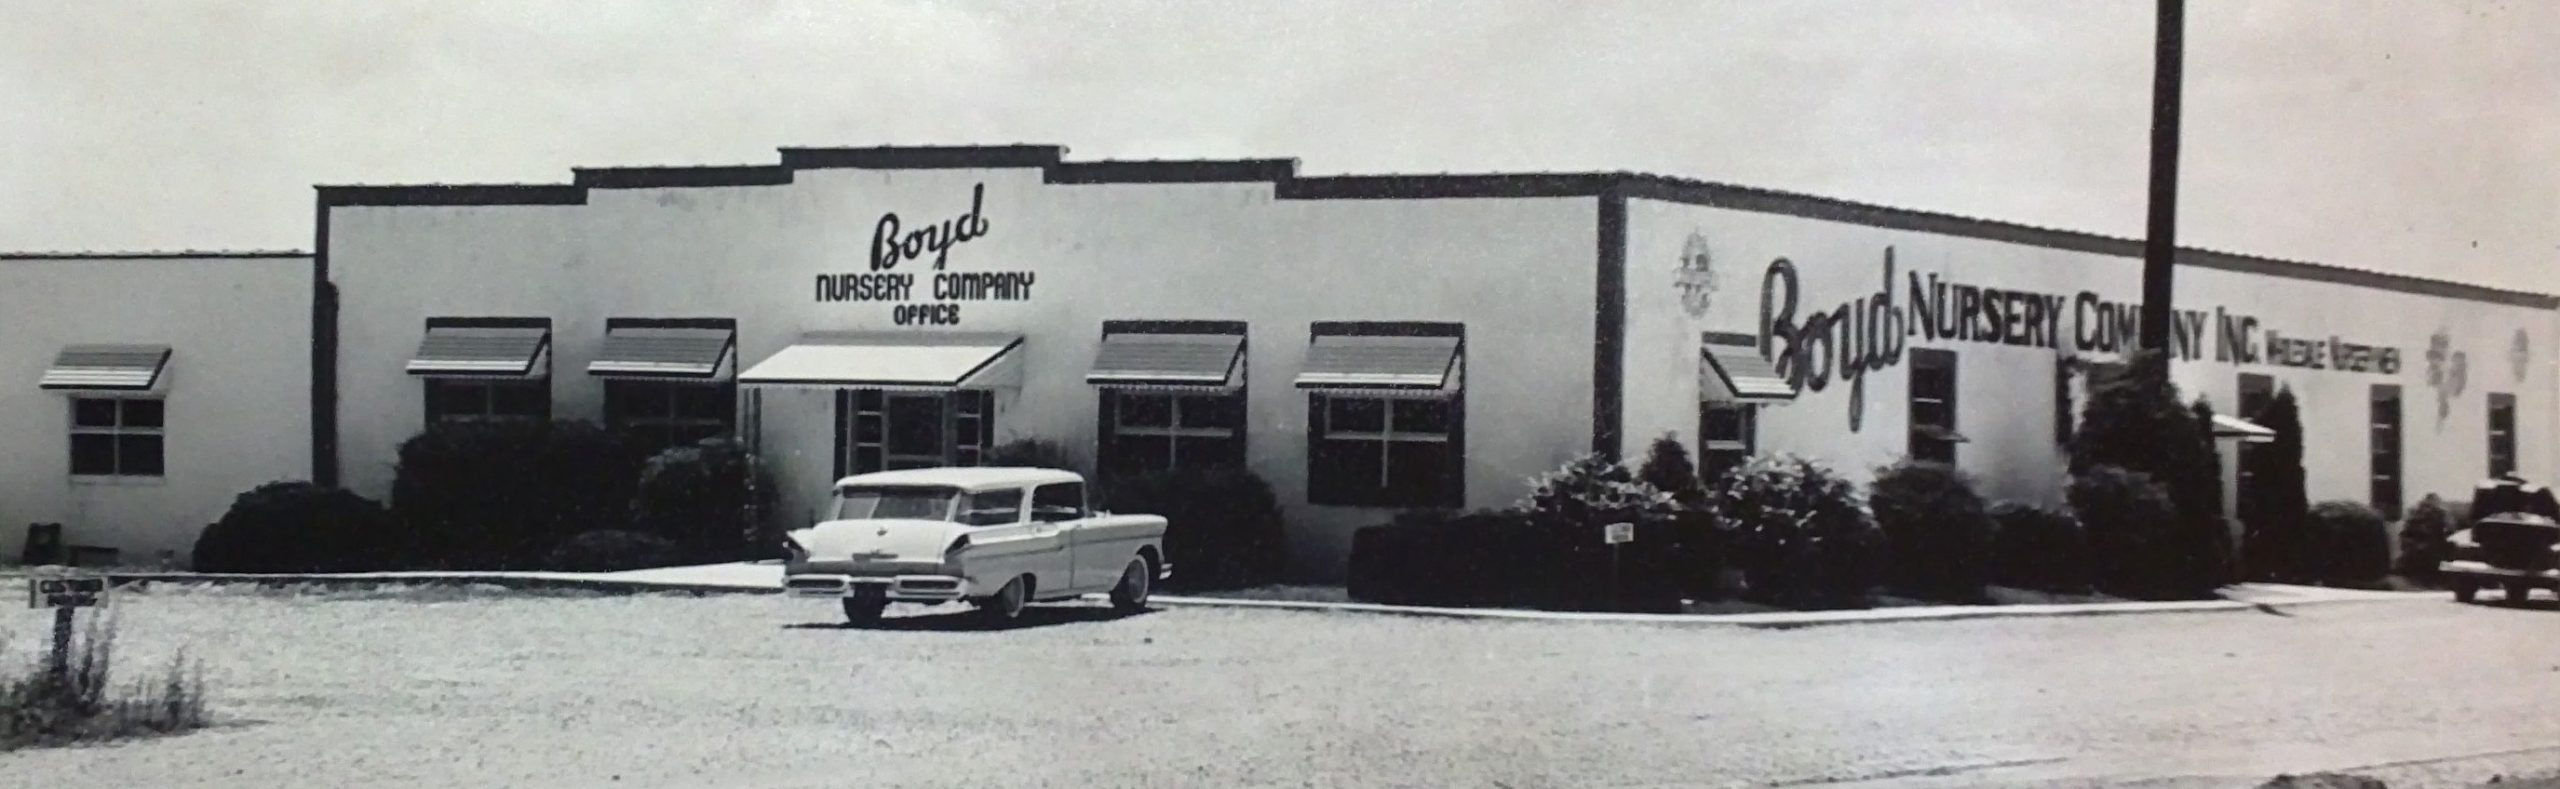 Boyd Nursery Company office in 1960s